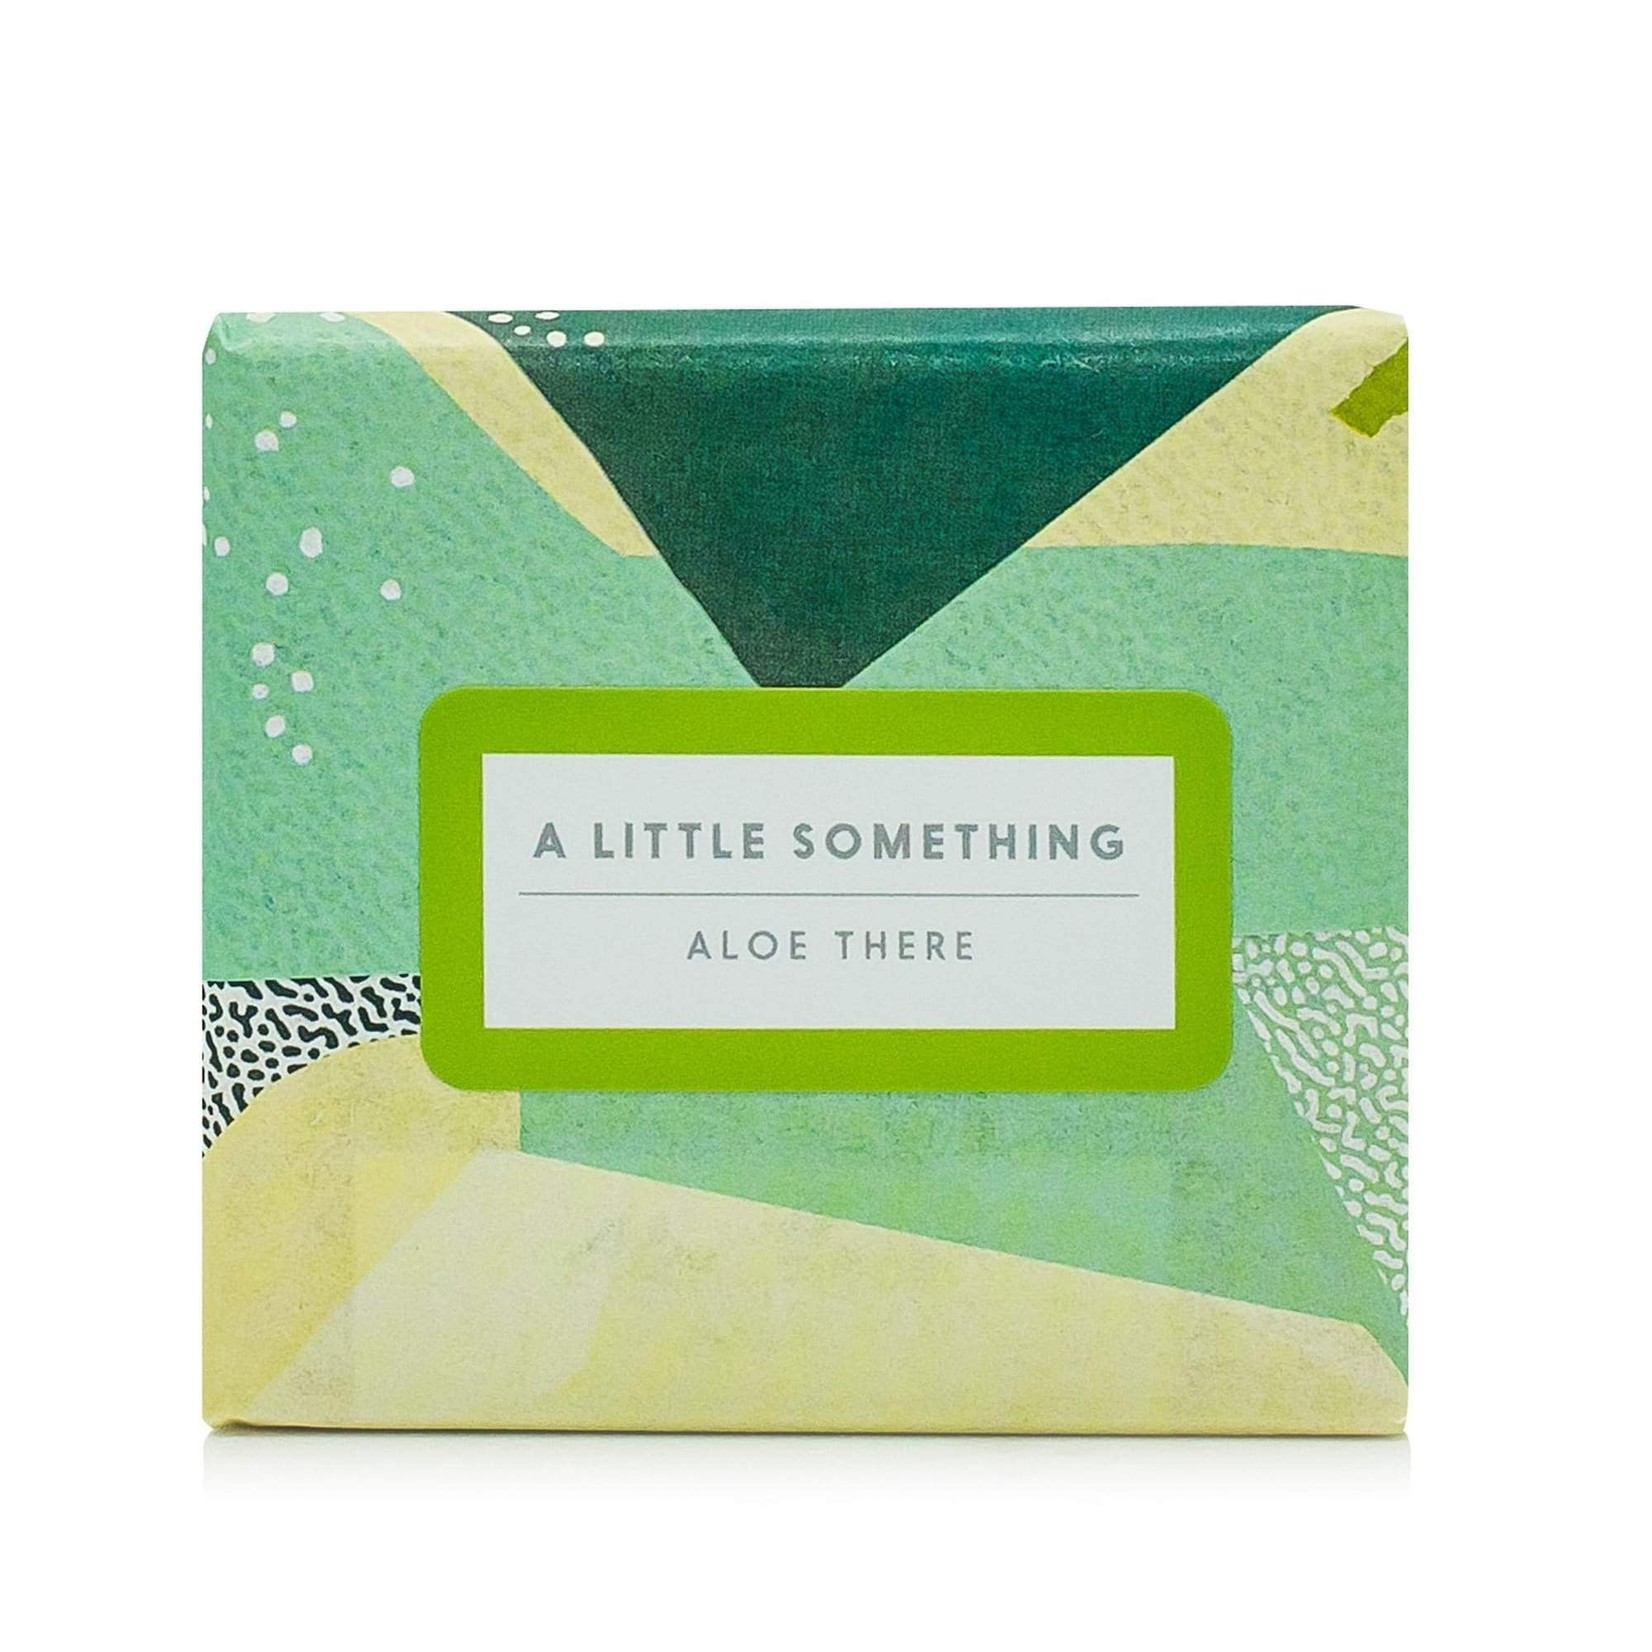 ROCKY MOUNTAIN SOAP CO. BIG BEAUTIFUL BAR SOAP - ALOE THERE